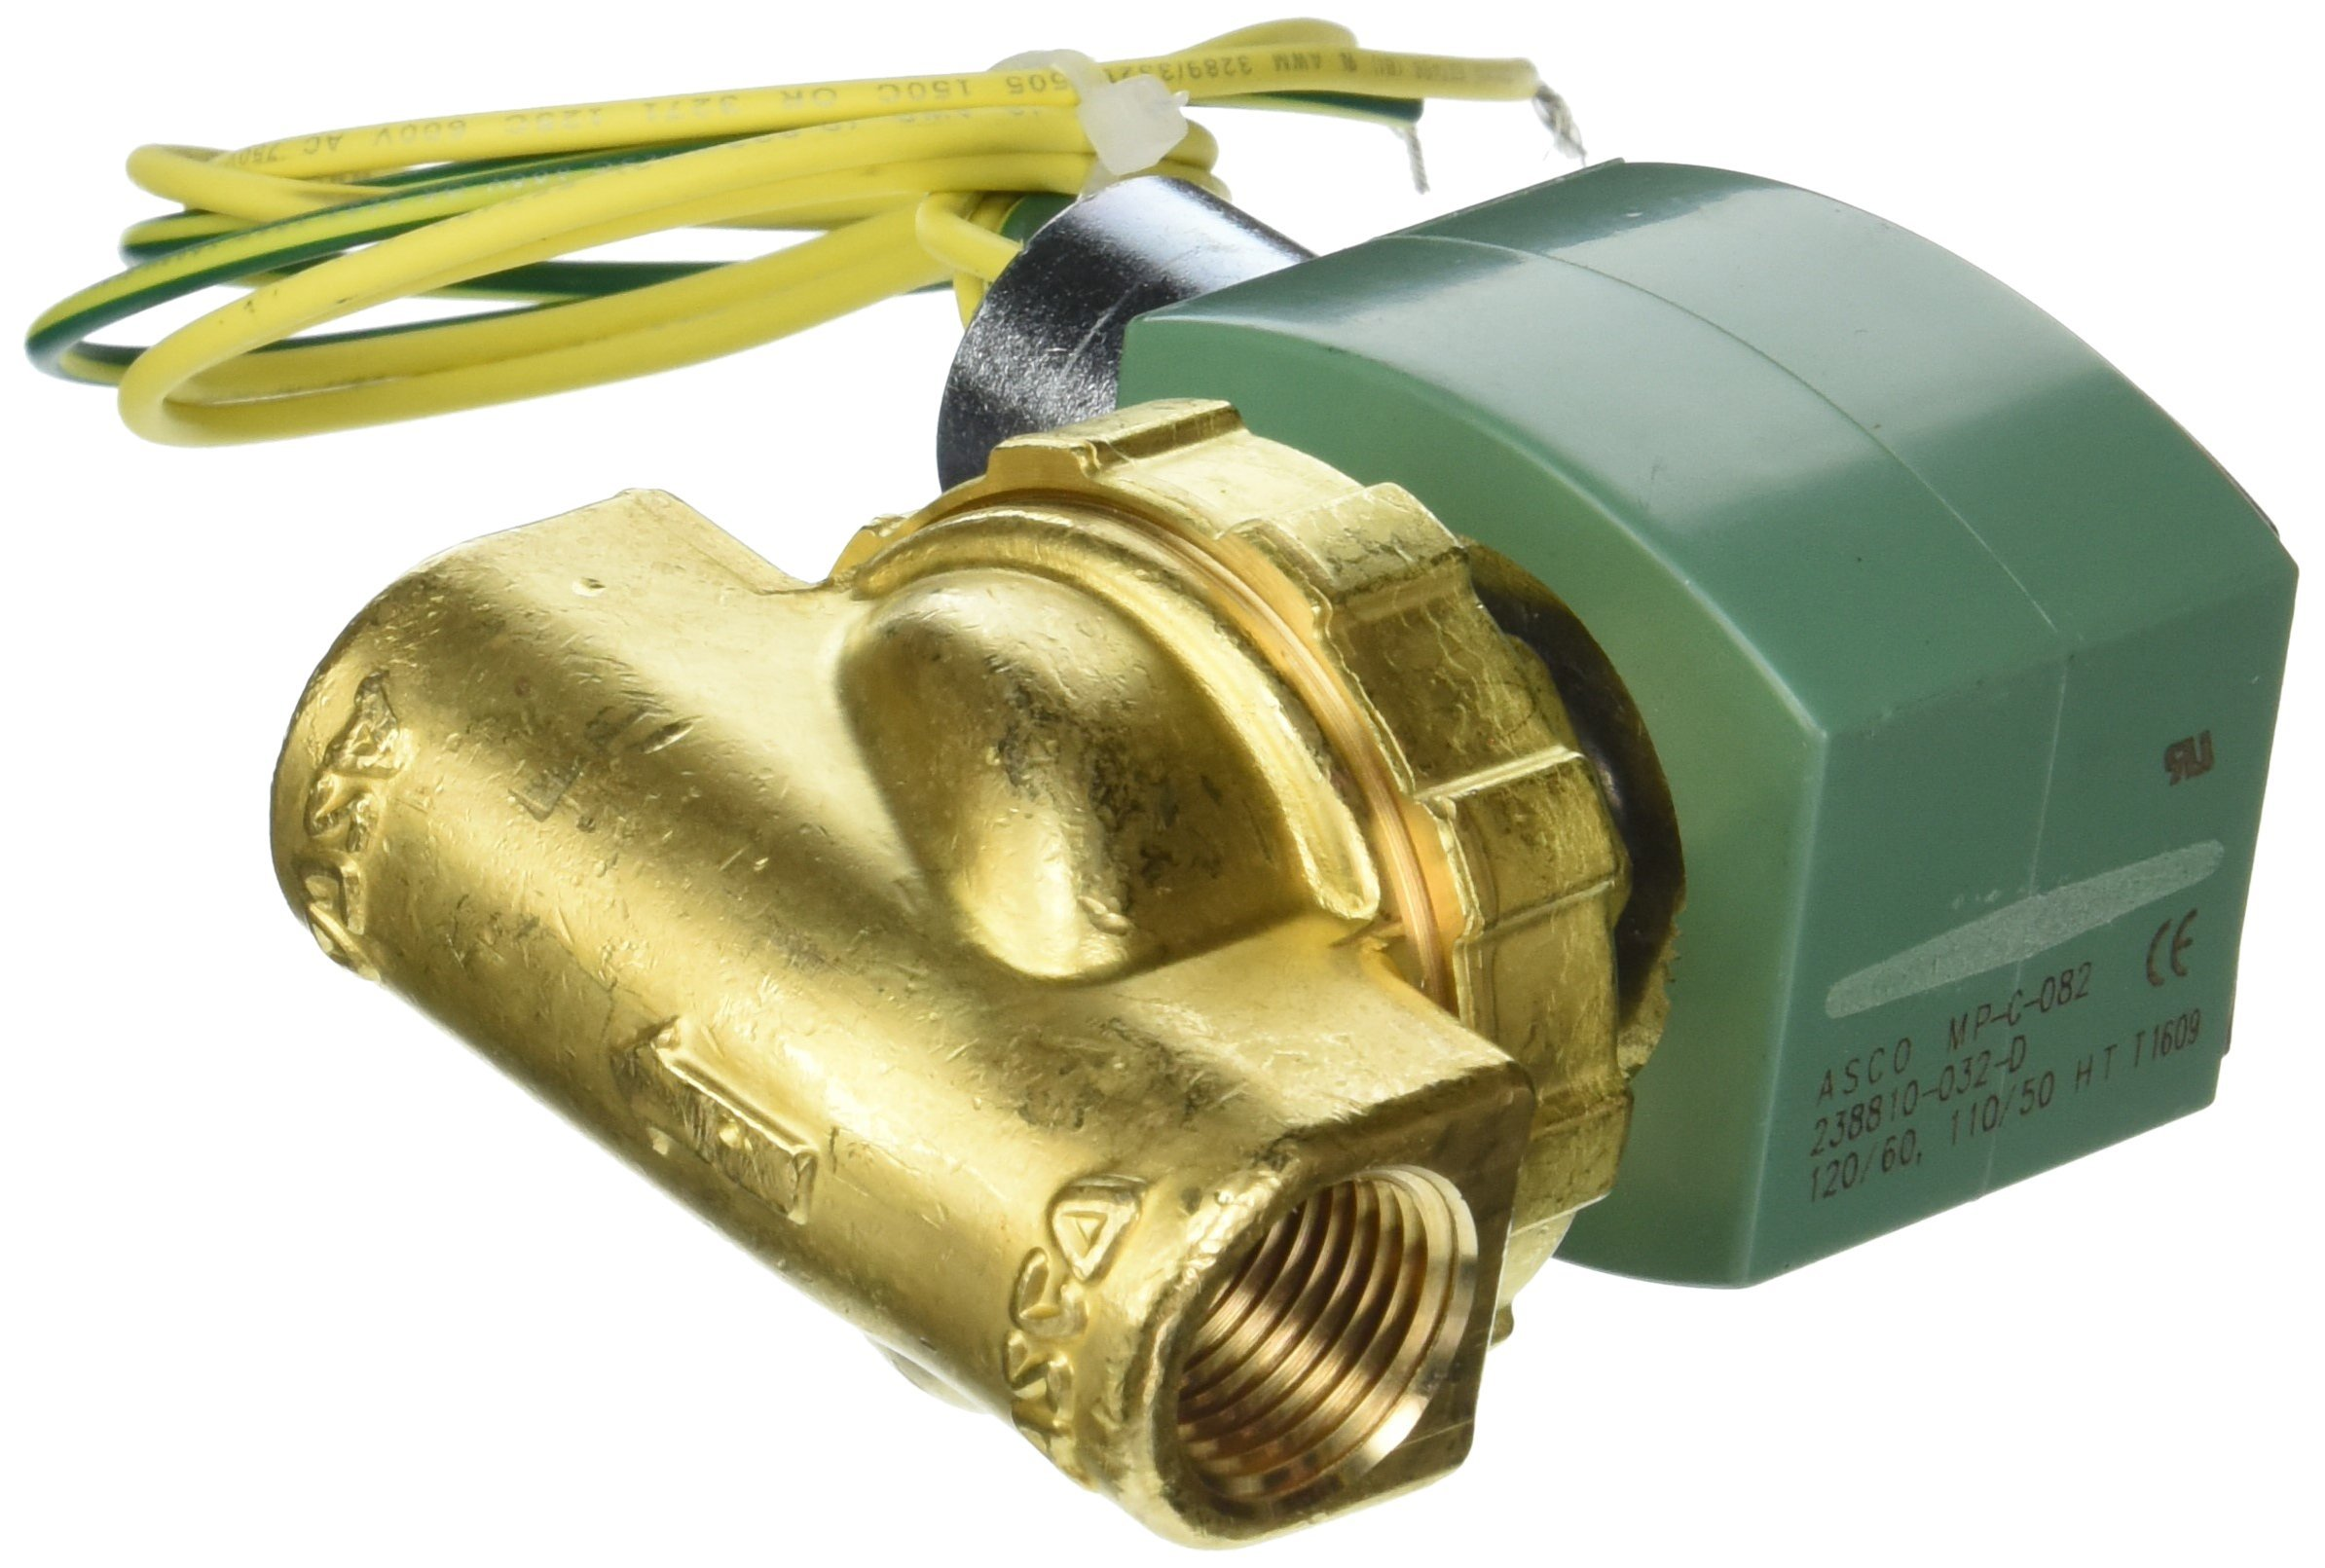 ASCO 8220G406 -120/60,110/50 Brass Body Hot Water and Steam Pilot Operated Diaphragm and Piston Valve, 125 psi Maximum Steam Operating Pressure, 1/2'' Pipe Size, 2-Way Normally Closed, EPDM/PTFE Sealin by Asco (Image #1)